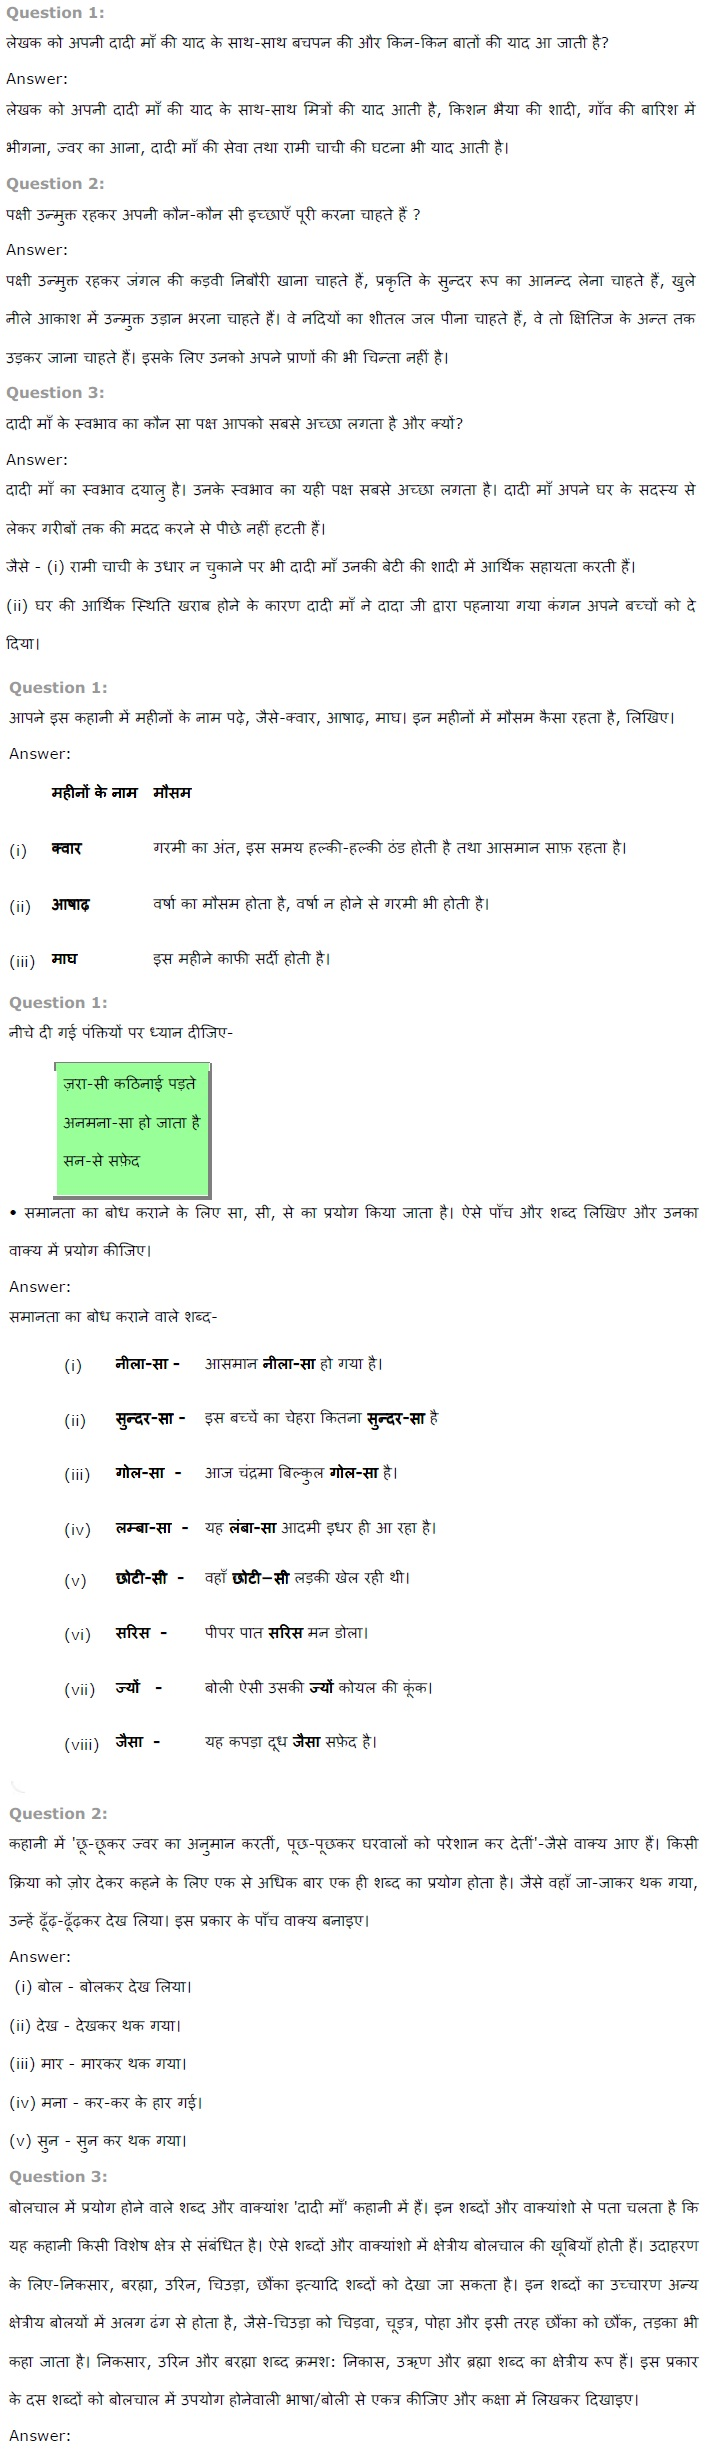 NCERT Solutions for Class 7th Hindi Chapter 2 दादी माँ